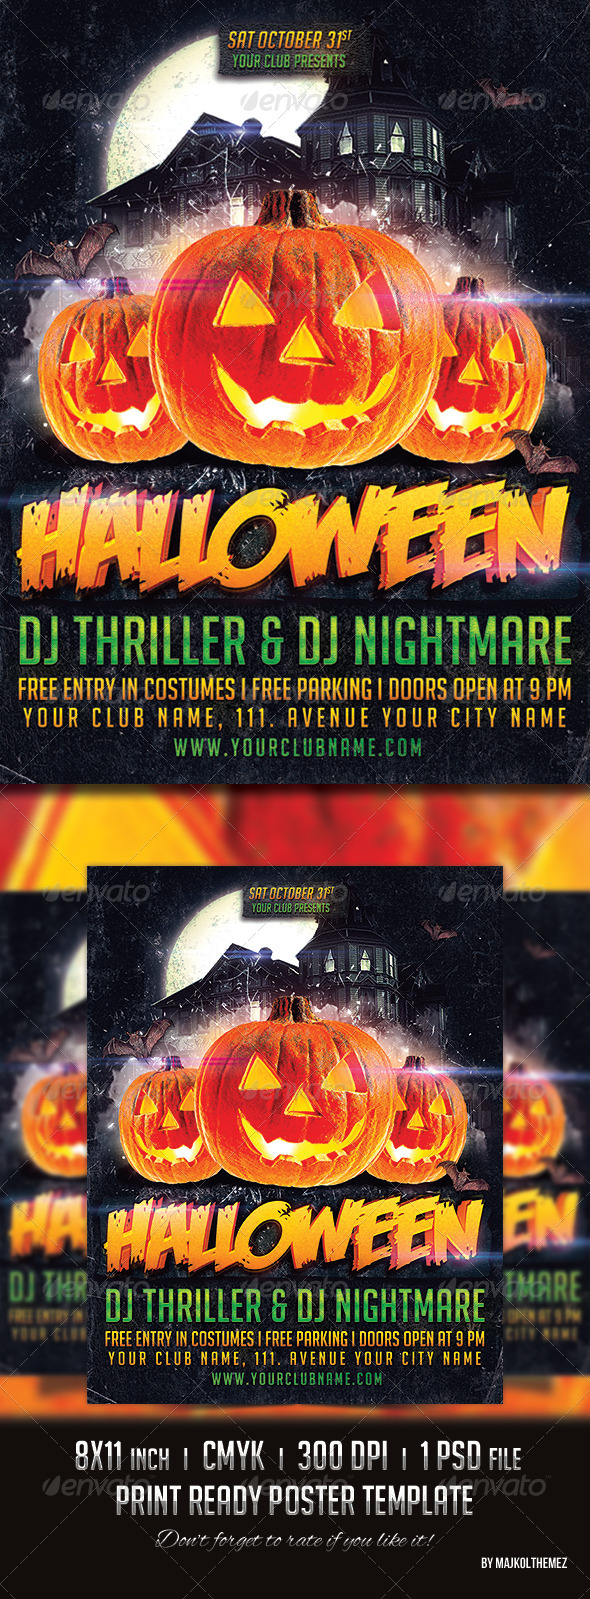 Halloween Party Poster 2014 - Holidays Events